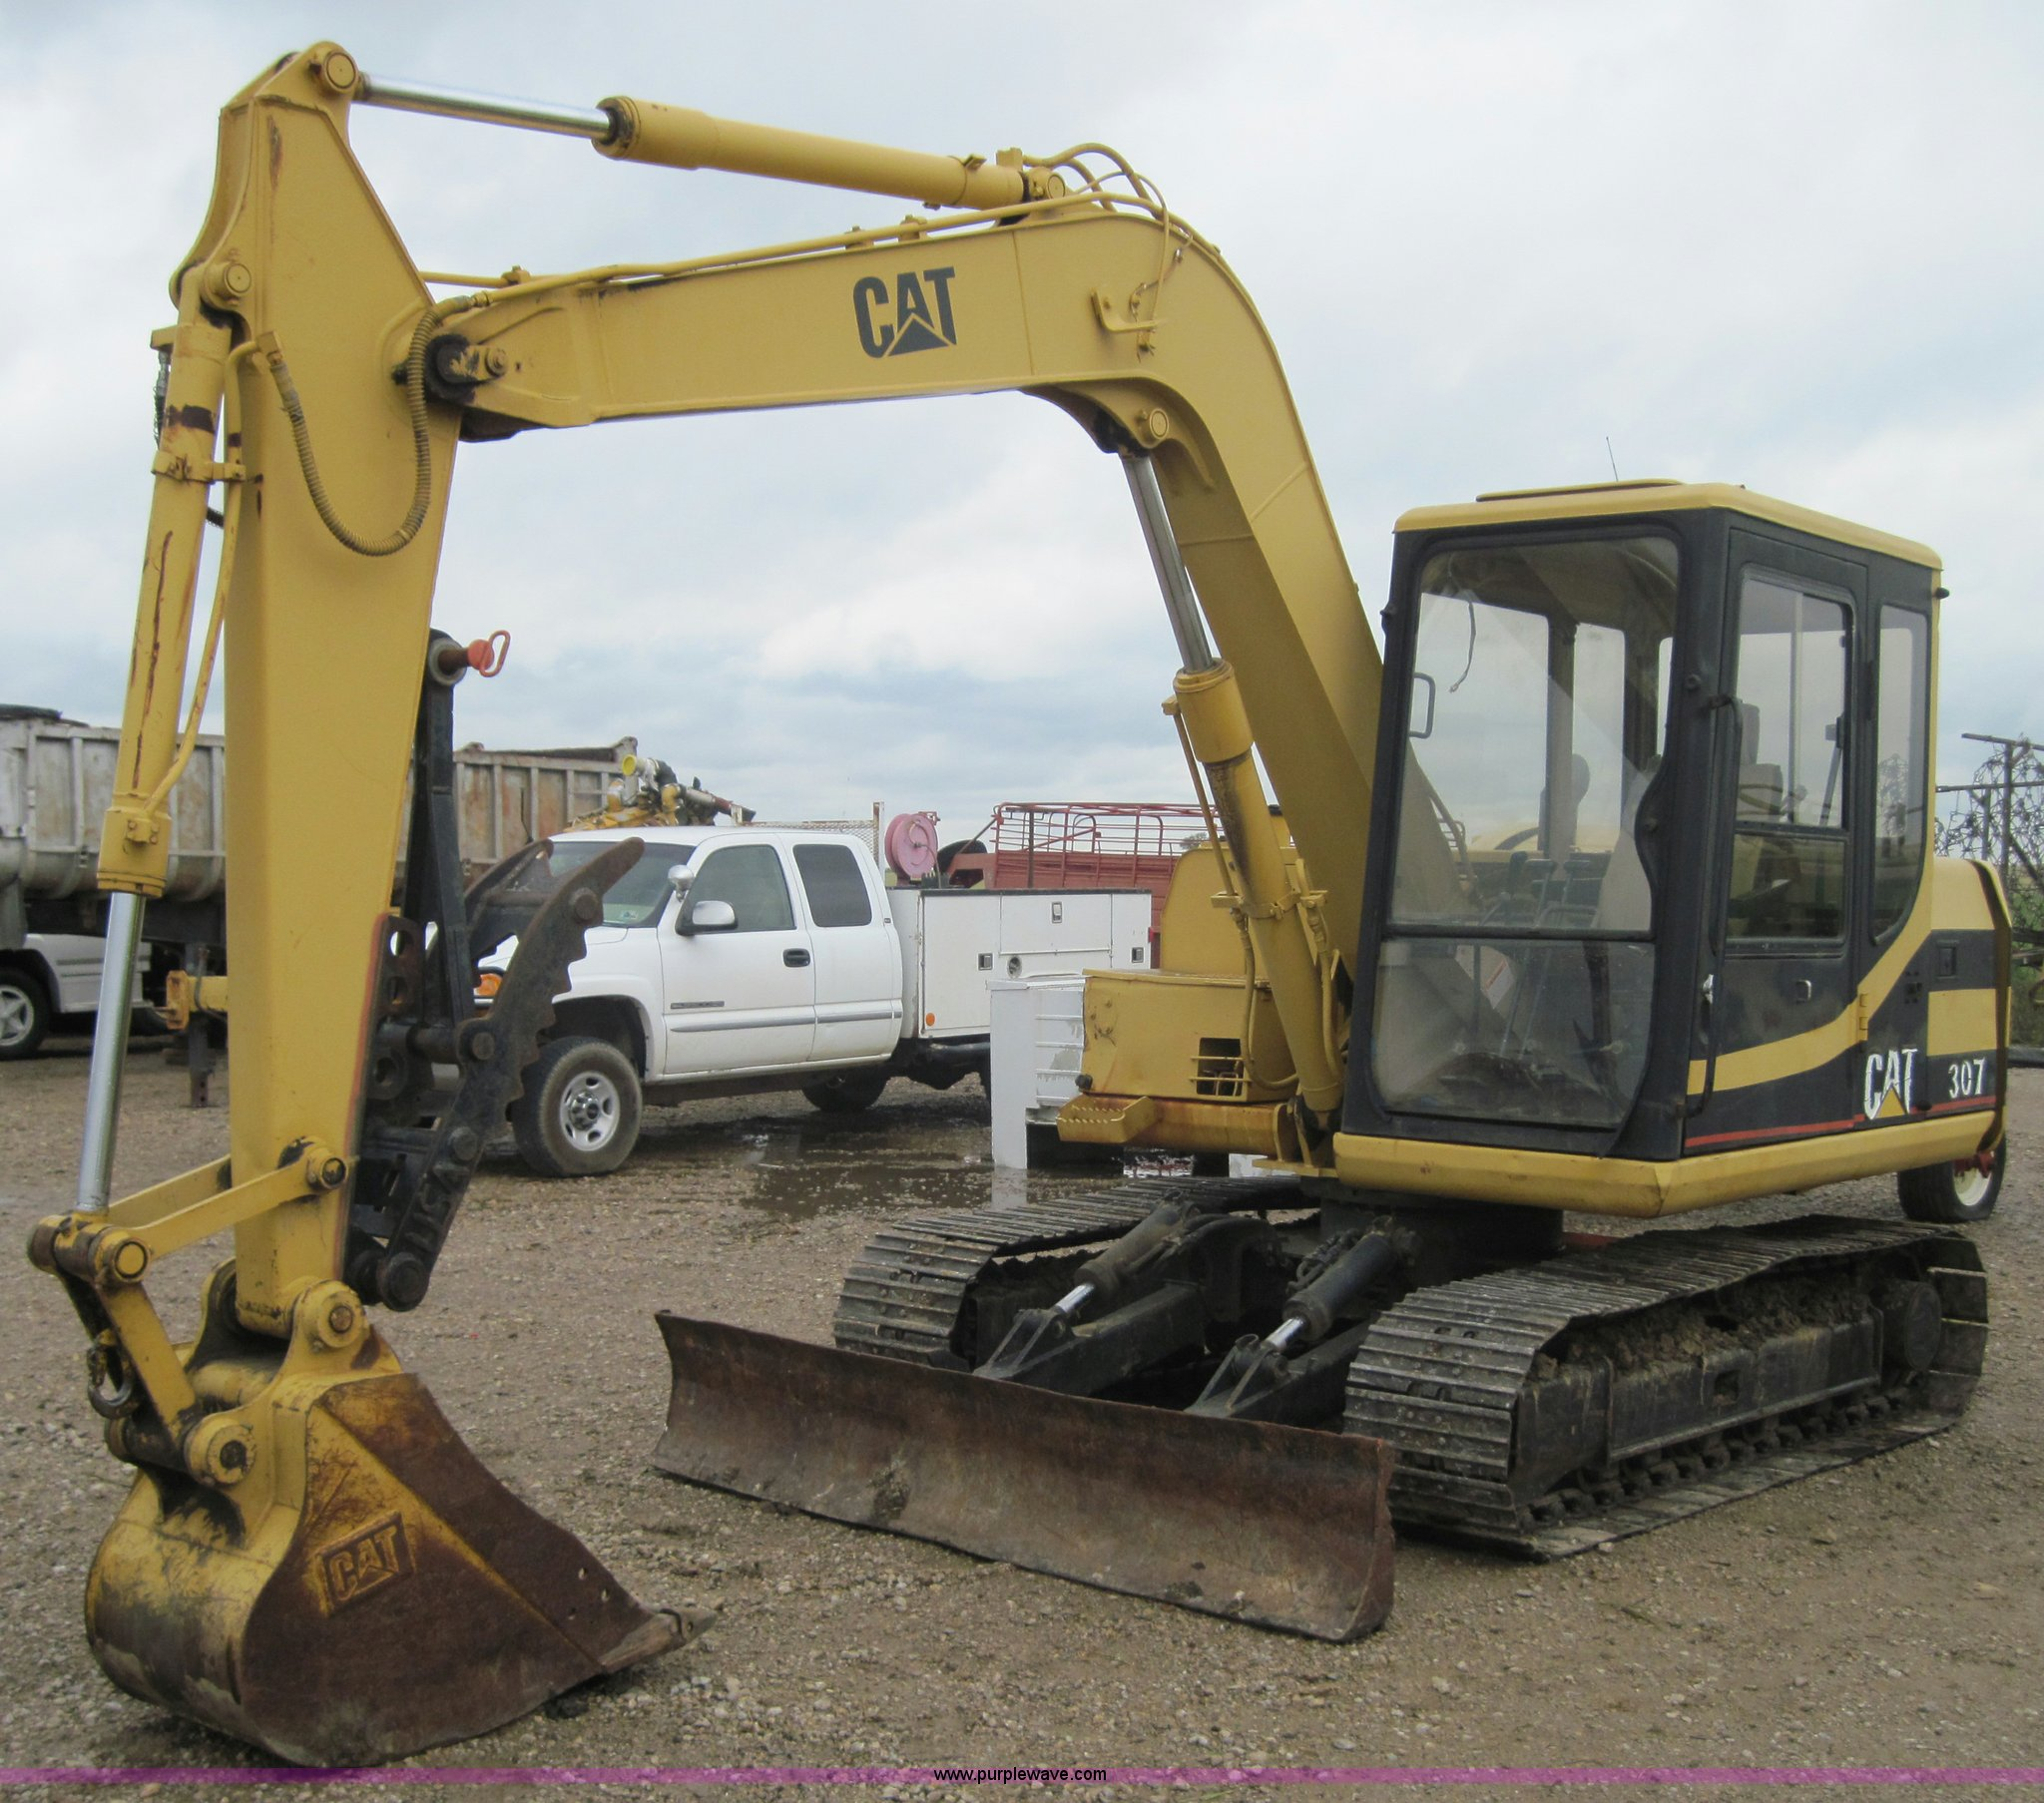 1995 caterpillar 307 excavator item 4001 sold august for New construction windows for sale